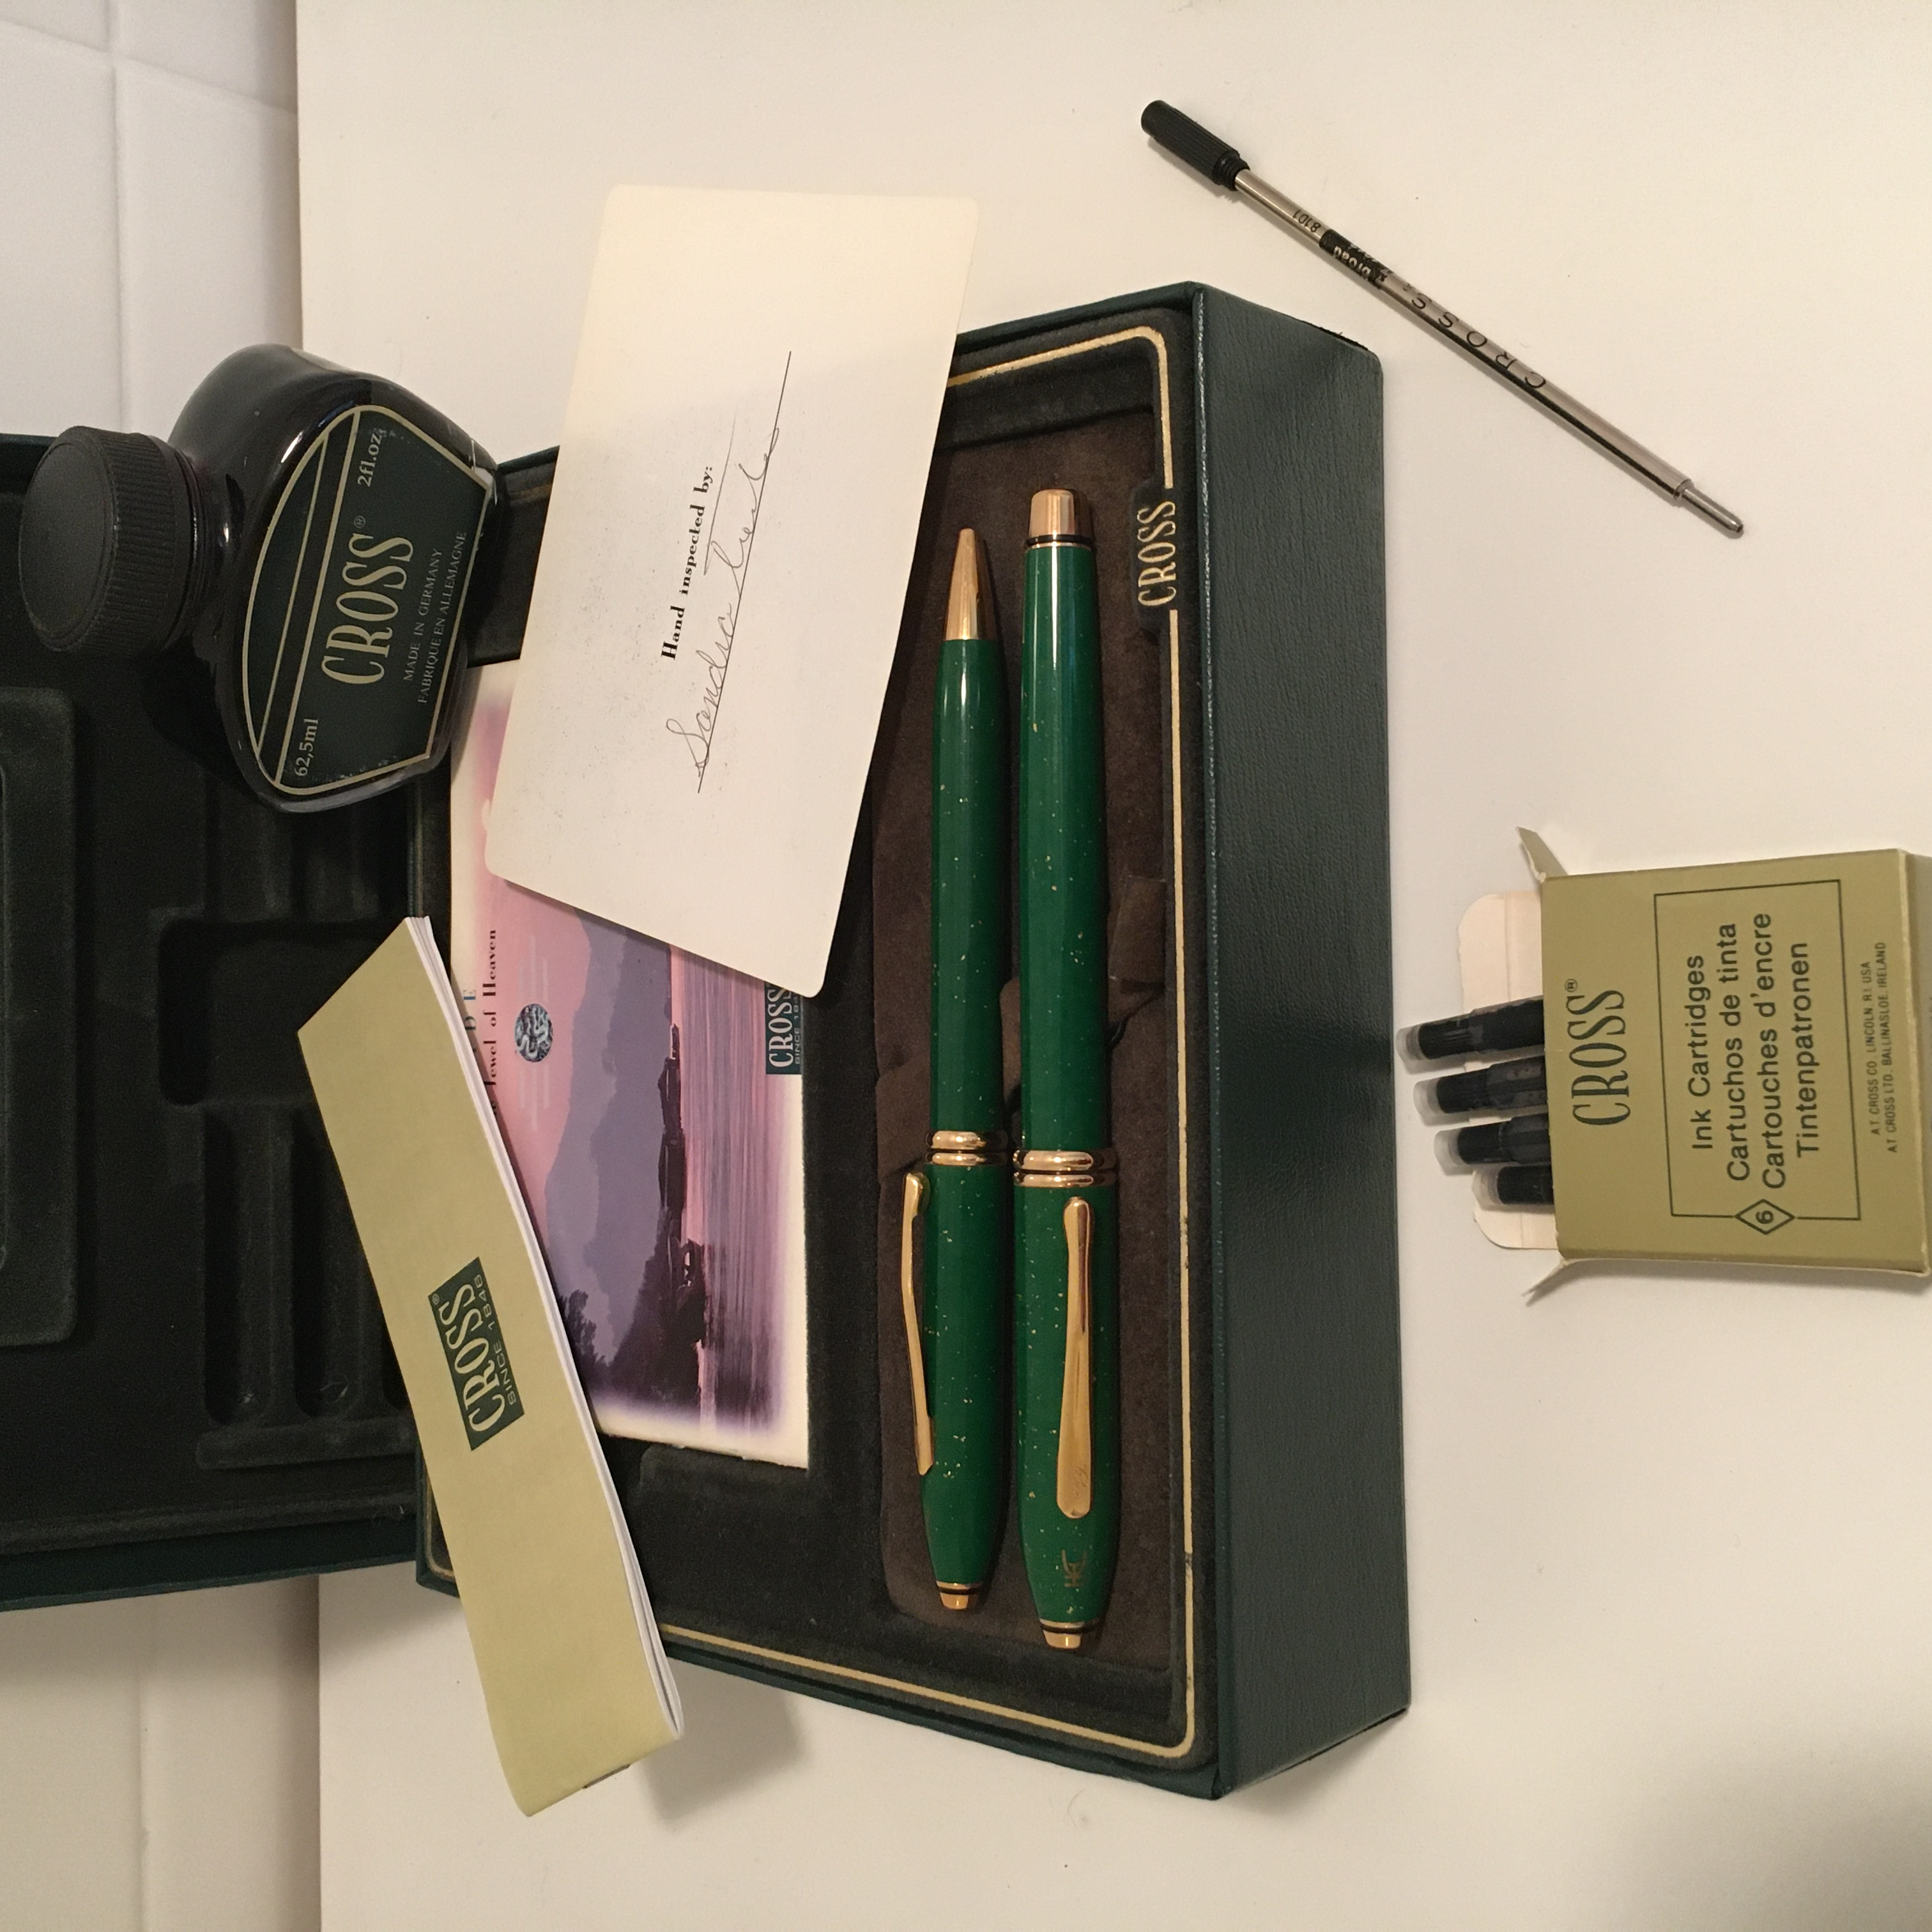 Pens and Pencils: : Cross: Limited Edition Townsend Fountain and Ballpoint set